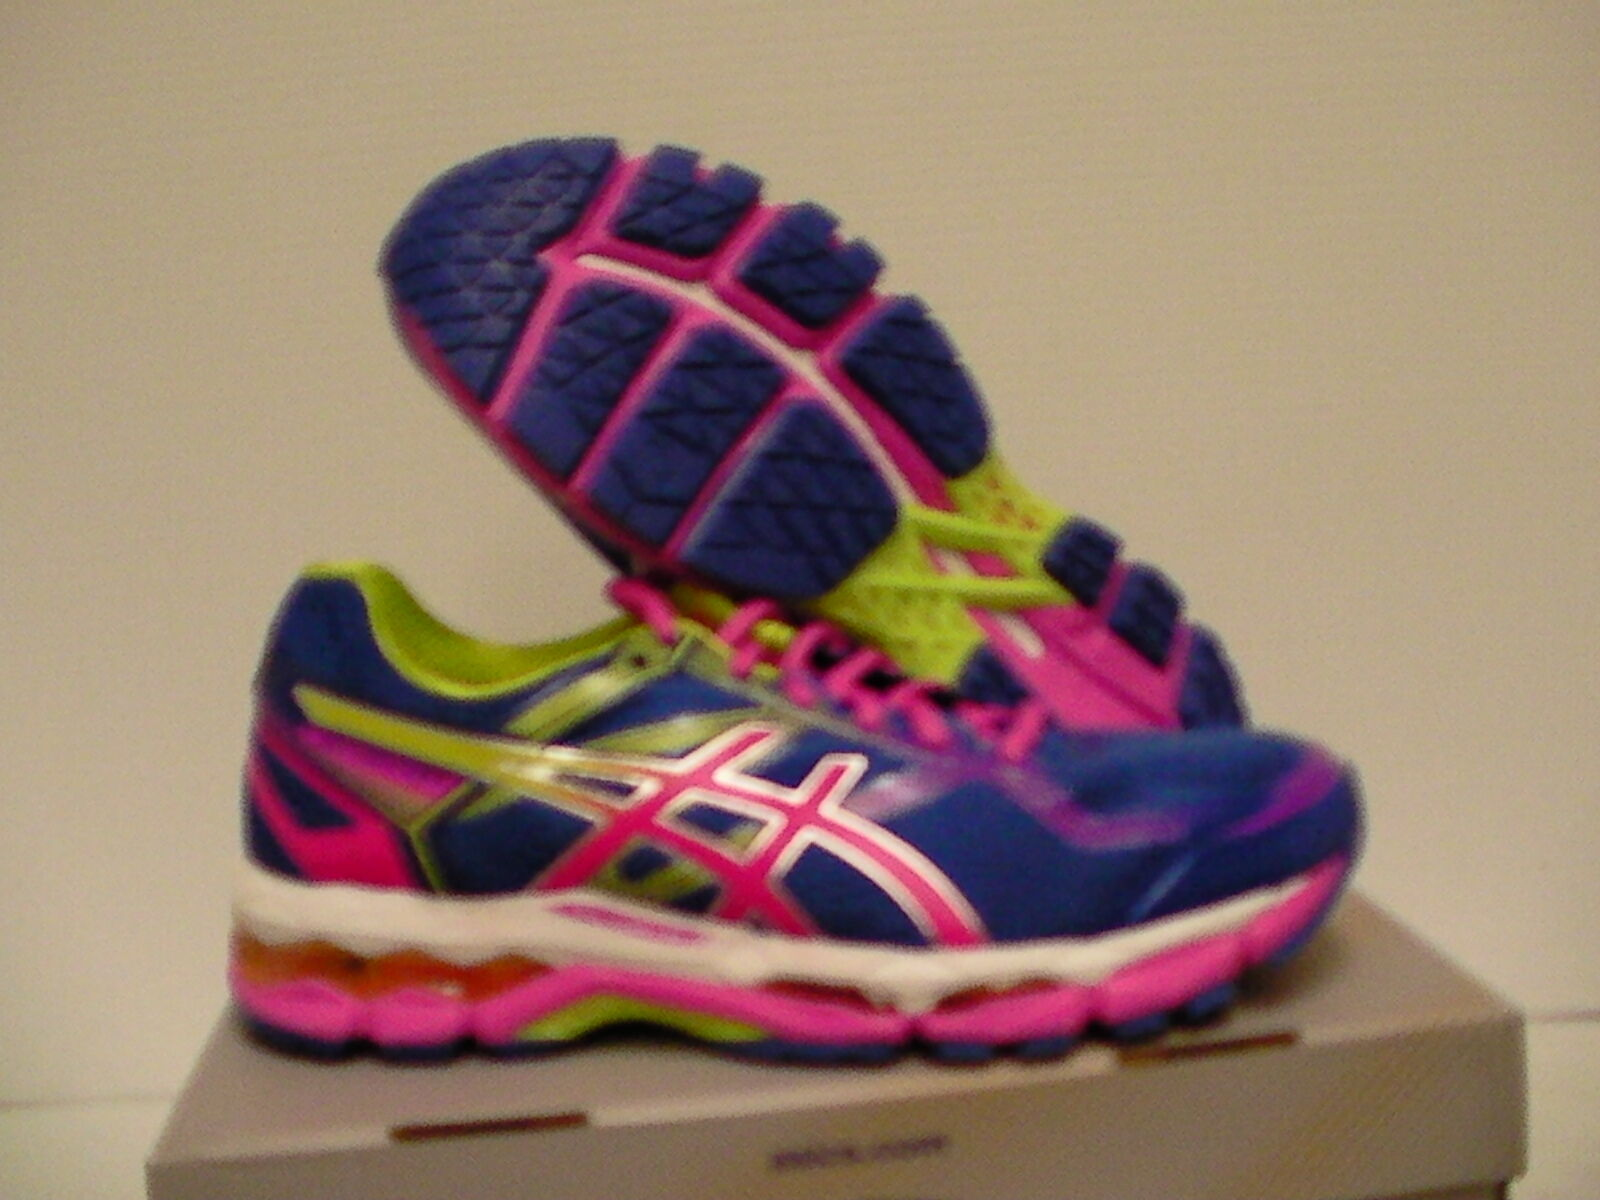 Asics women's running shoes gel surveyor 5 bluee pink lime size 10